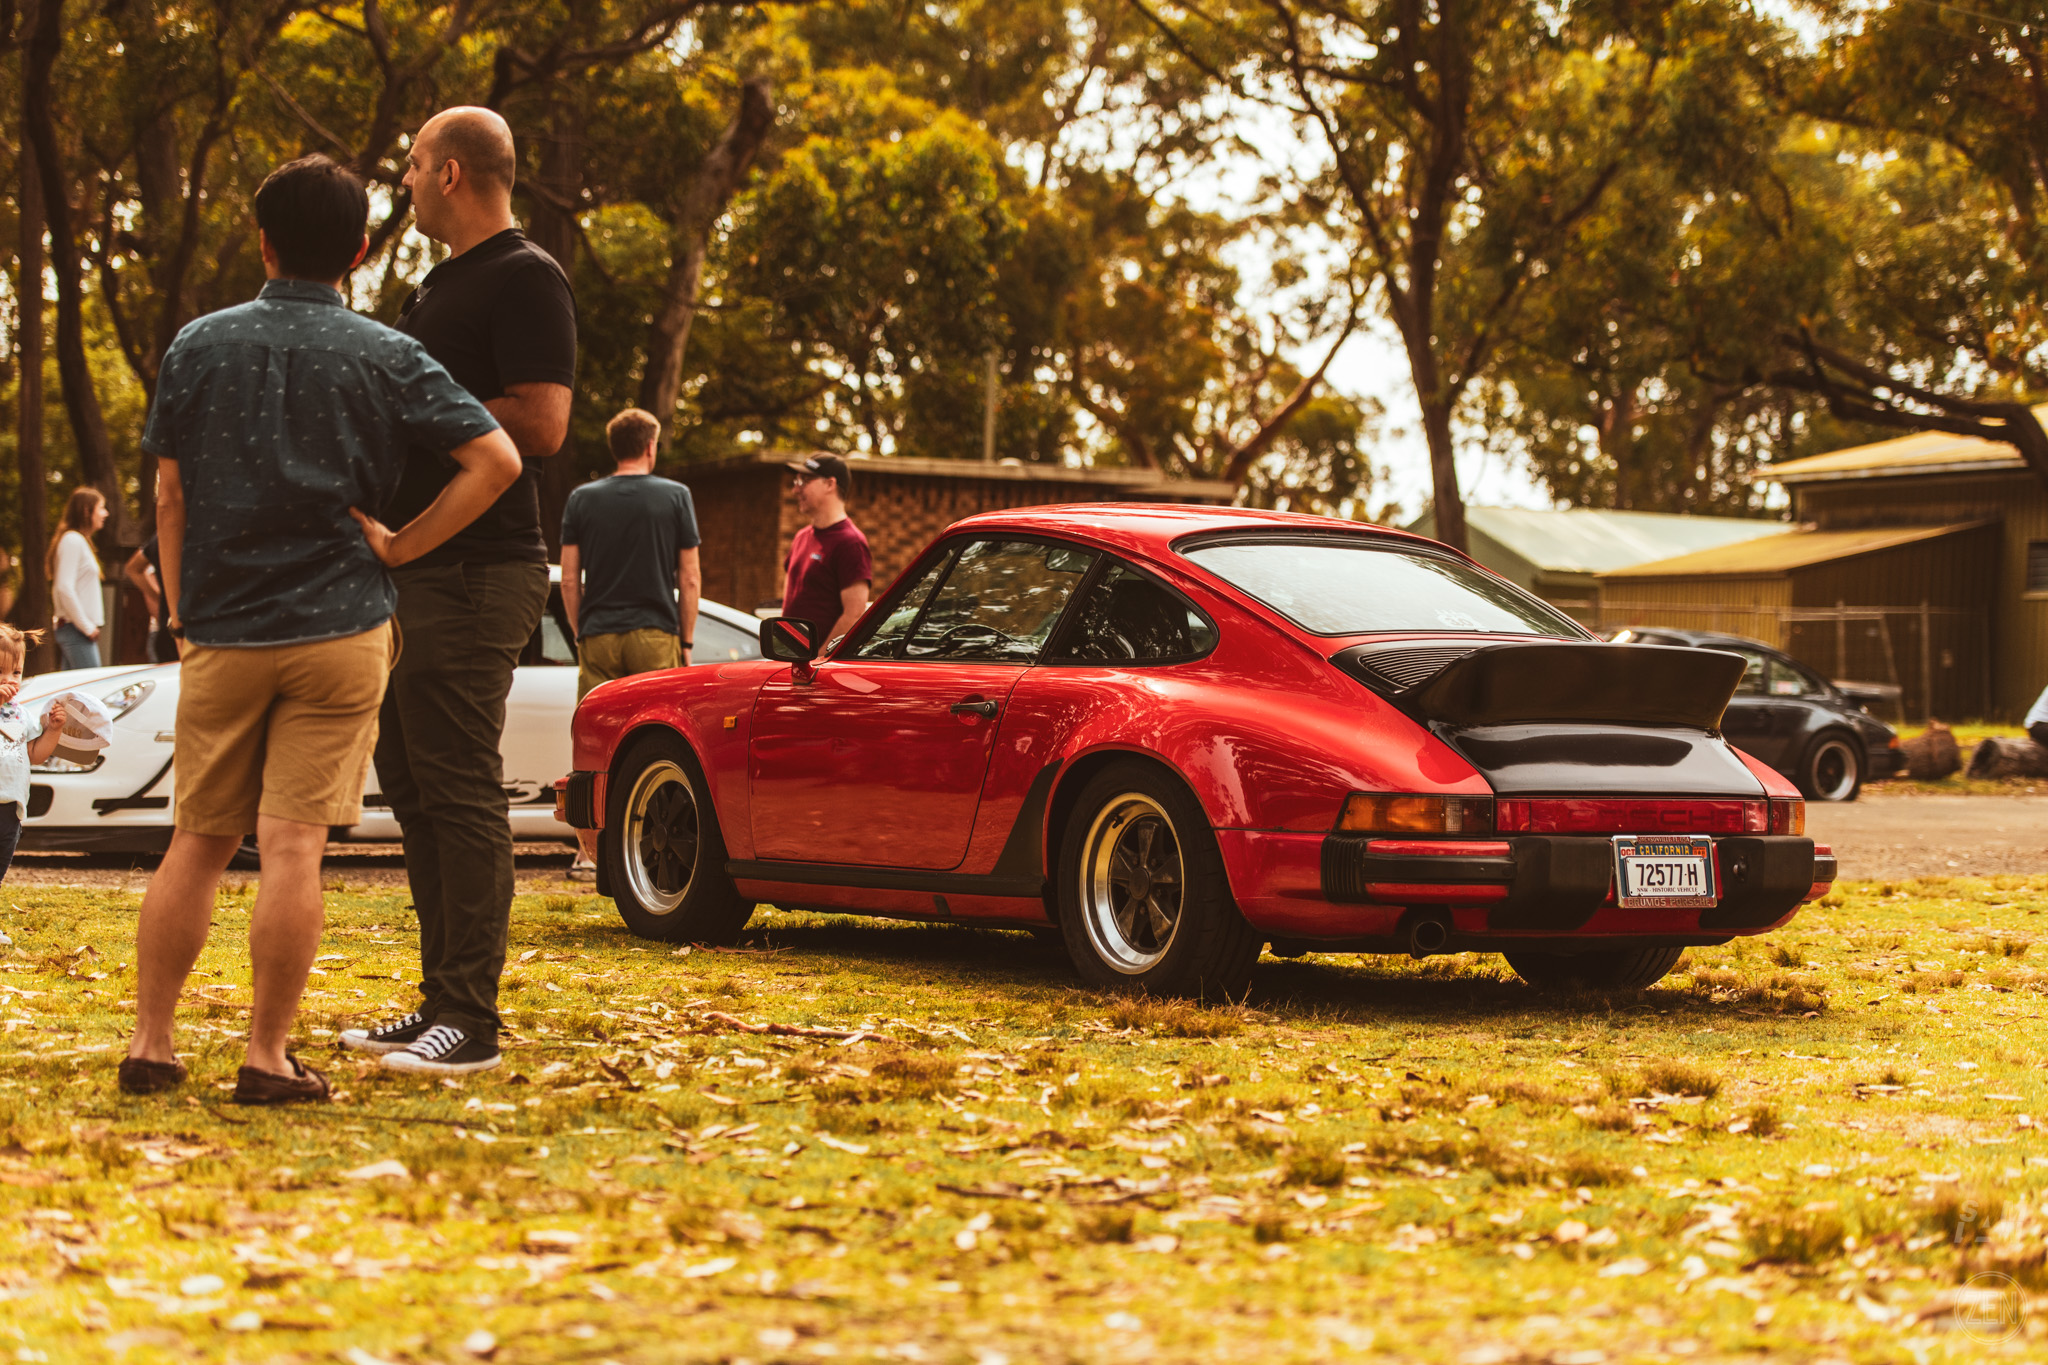 2019-12-08 - Porsches & Coffee 134